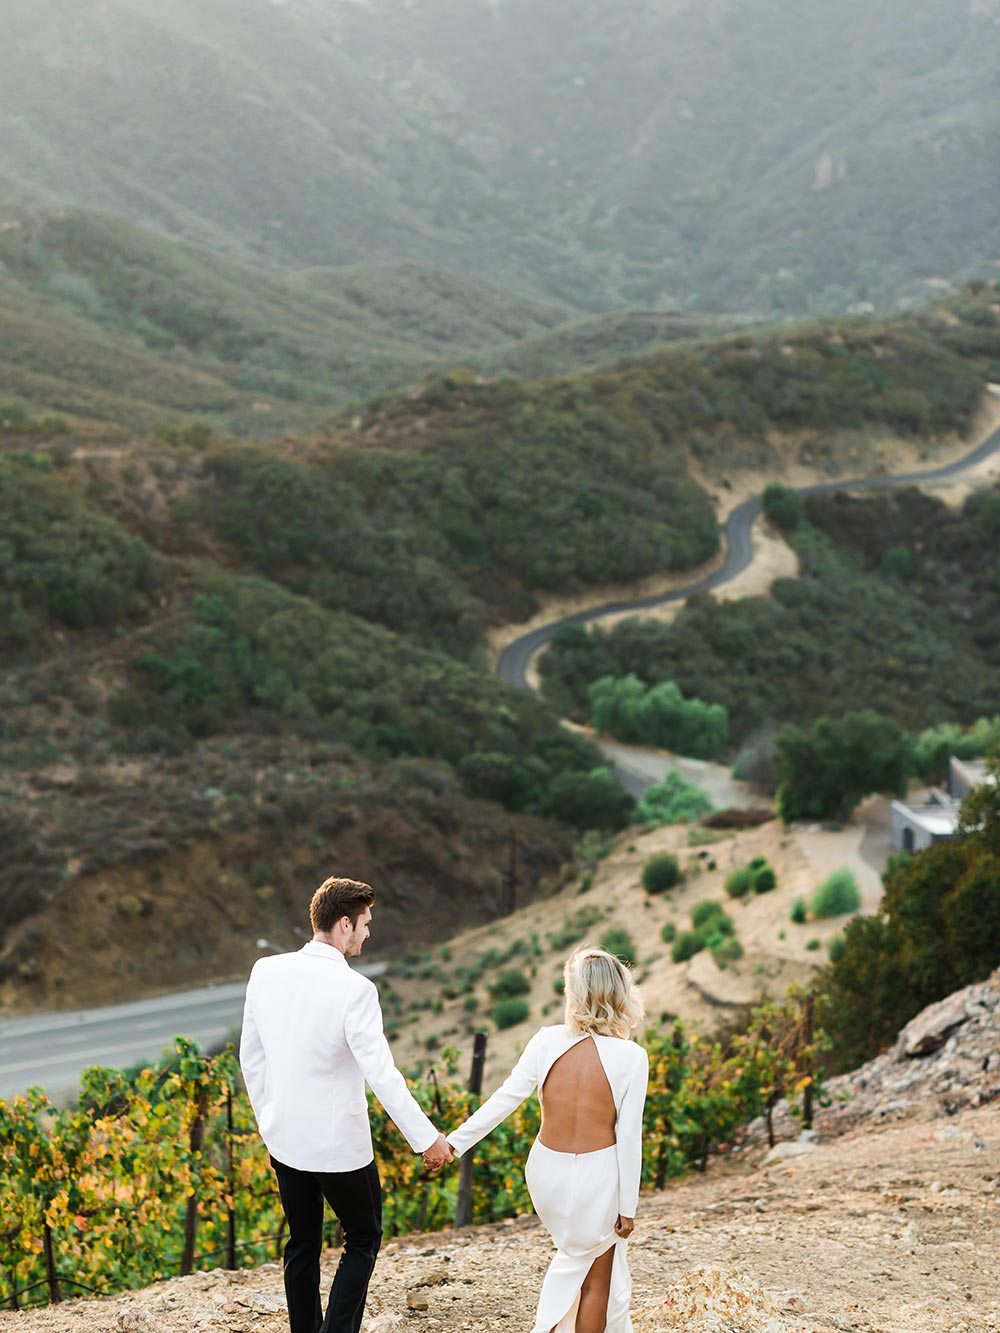 Malibu Hills wedding ceremony